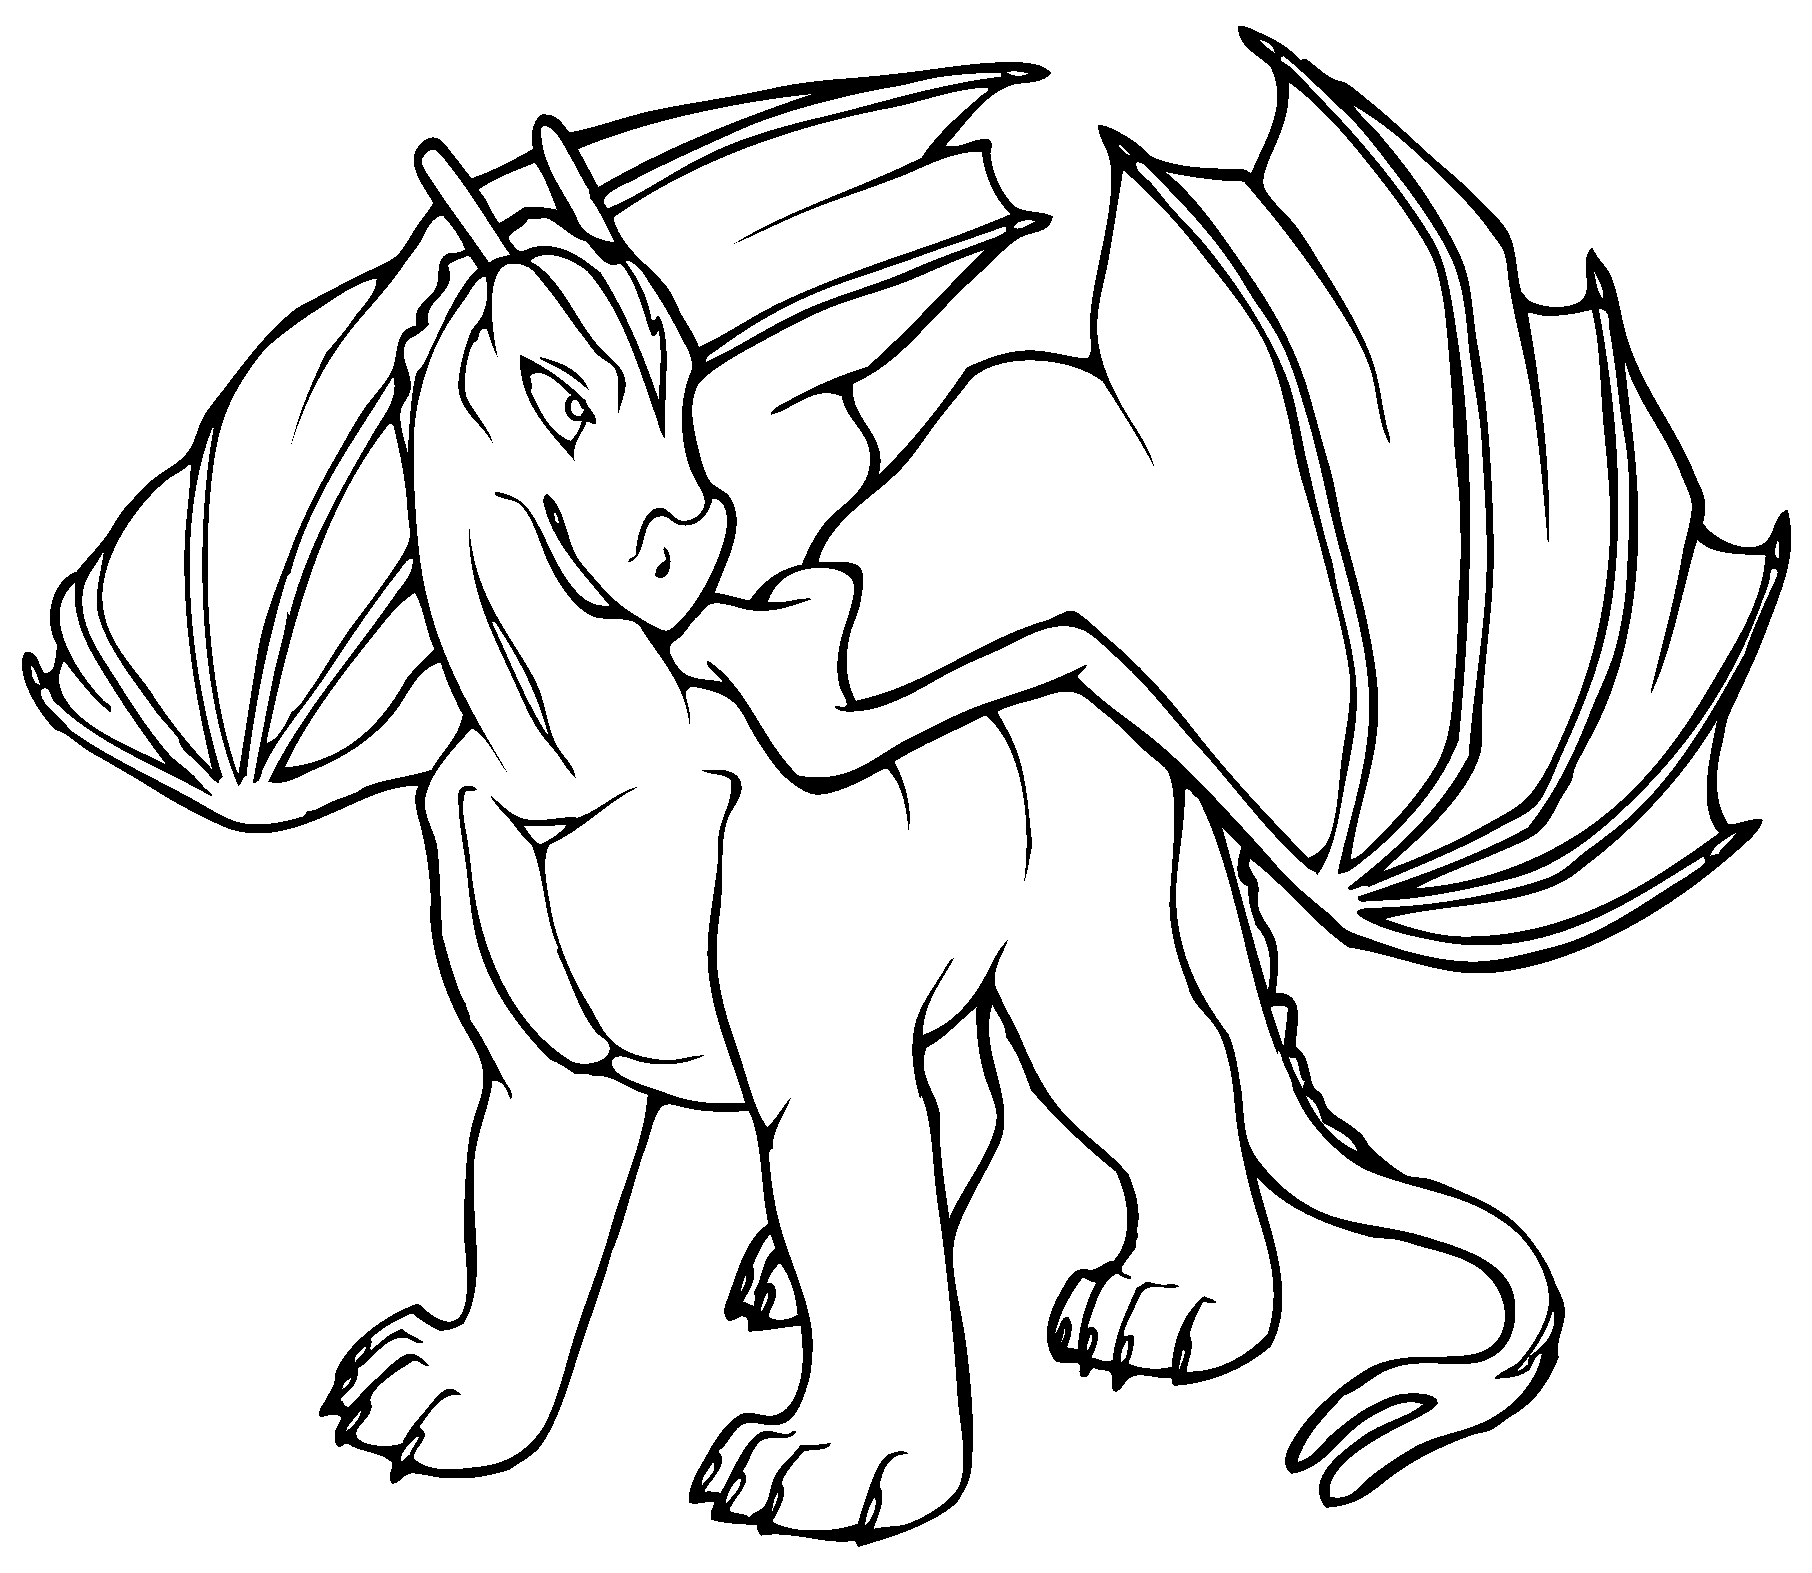 cartoon dragon coloring pages - Printable Dragon Coloring Pages